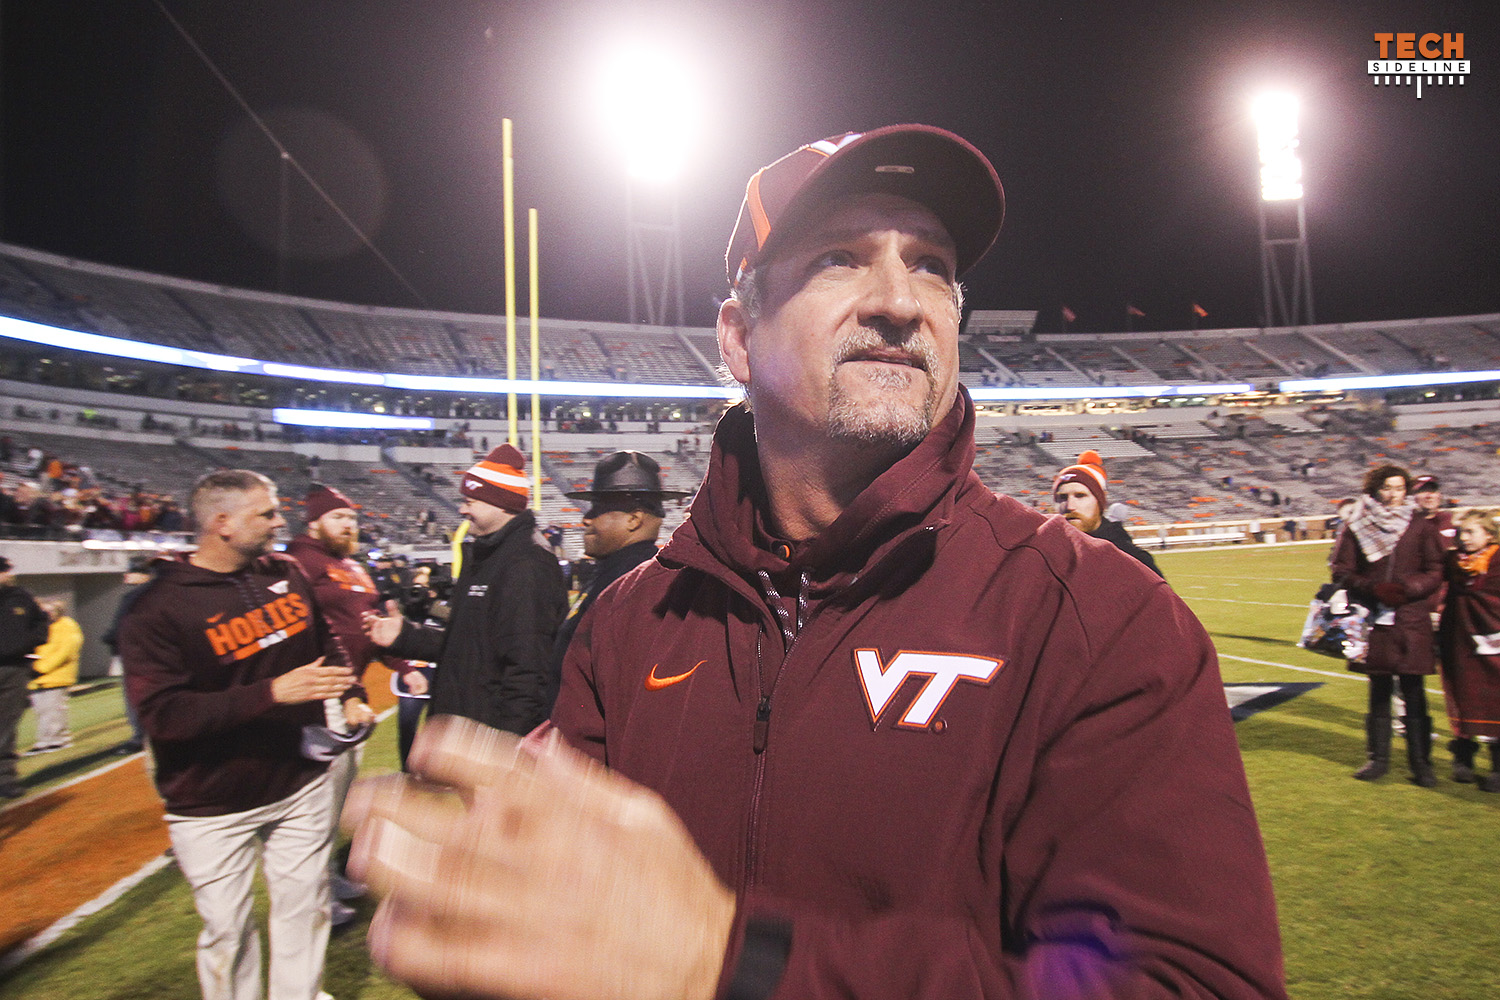 Bud Foster, Virginia Tech